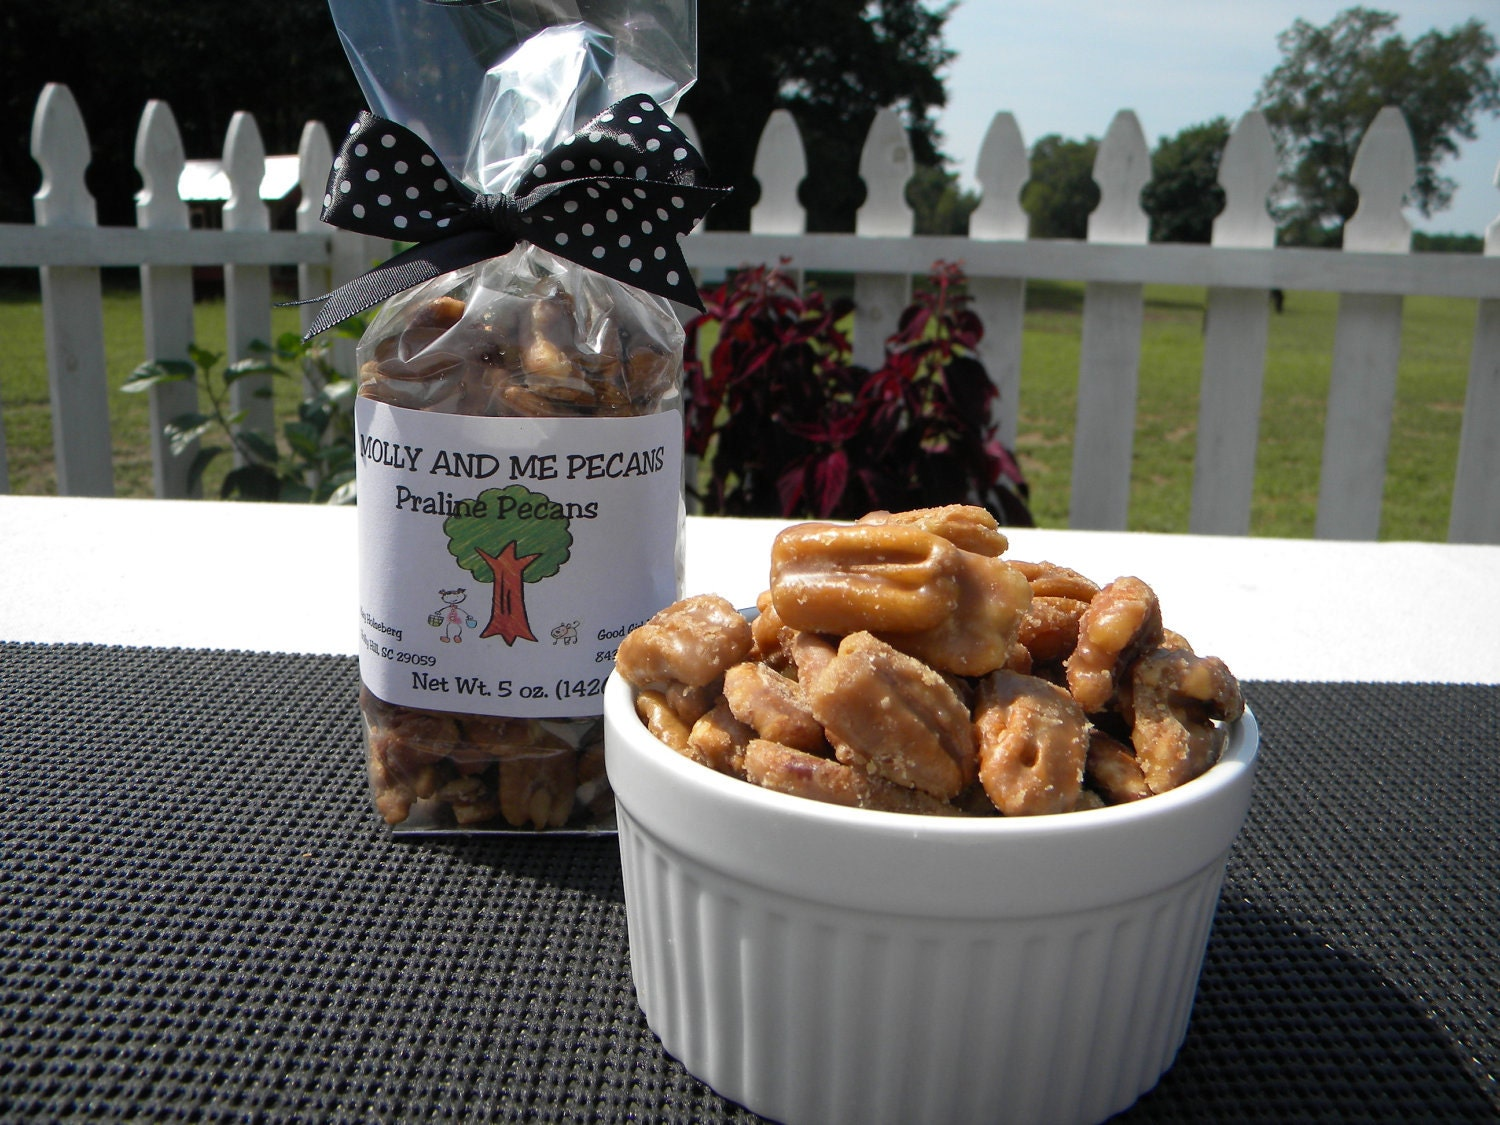 Praline Pecans - From our Farm to You